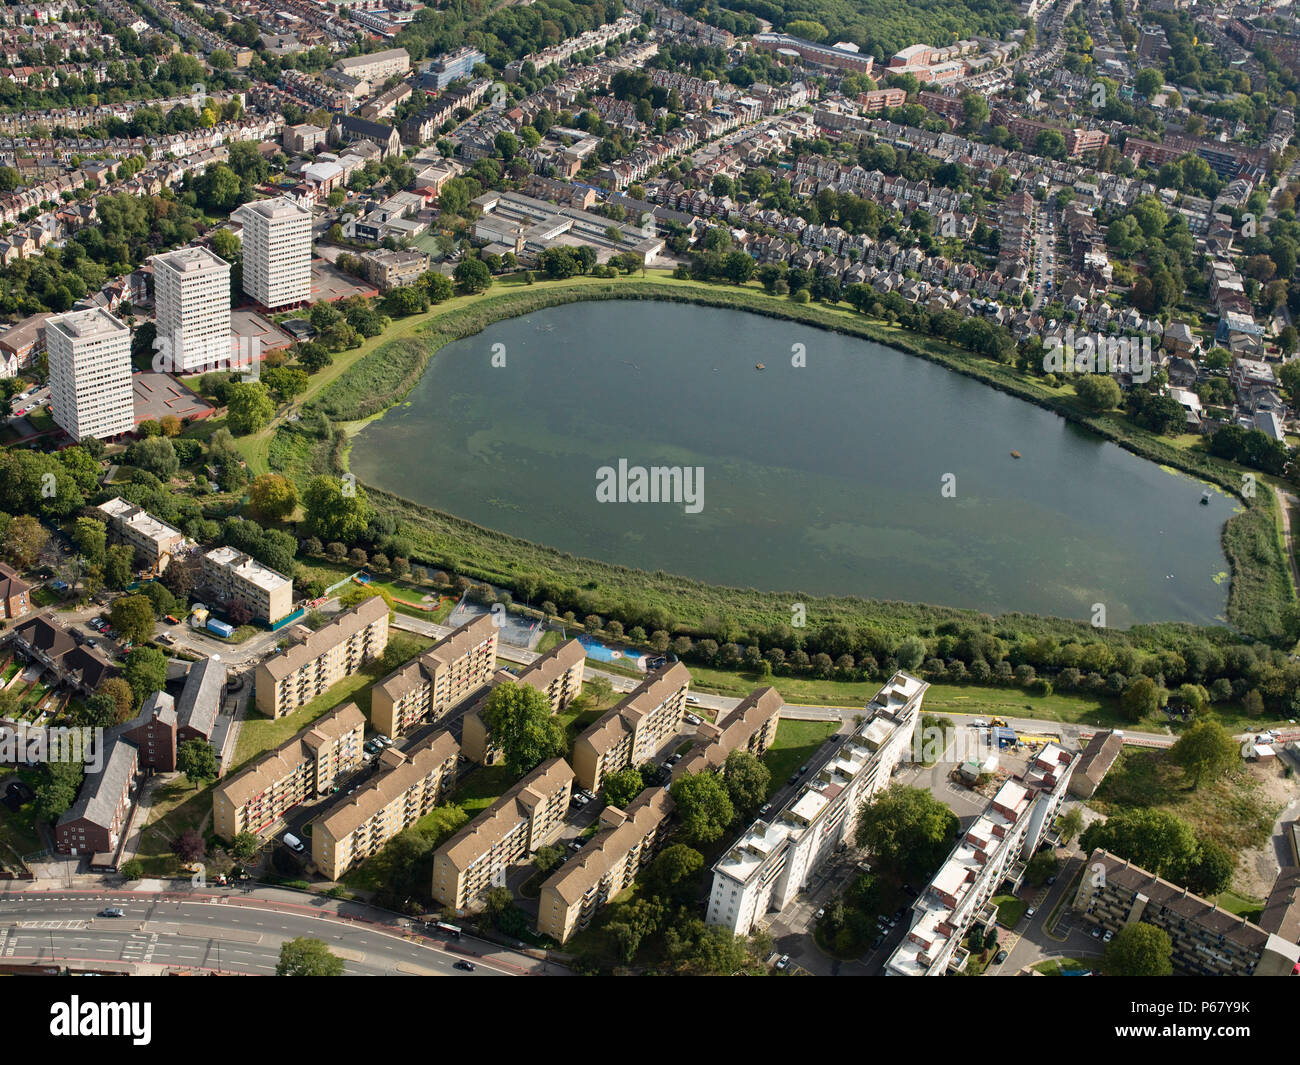 Aerial view North London reservoir and housing estates between Stratford and West Ham, London, UK. - Stock Image